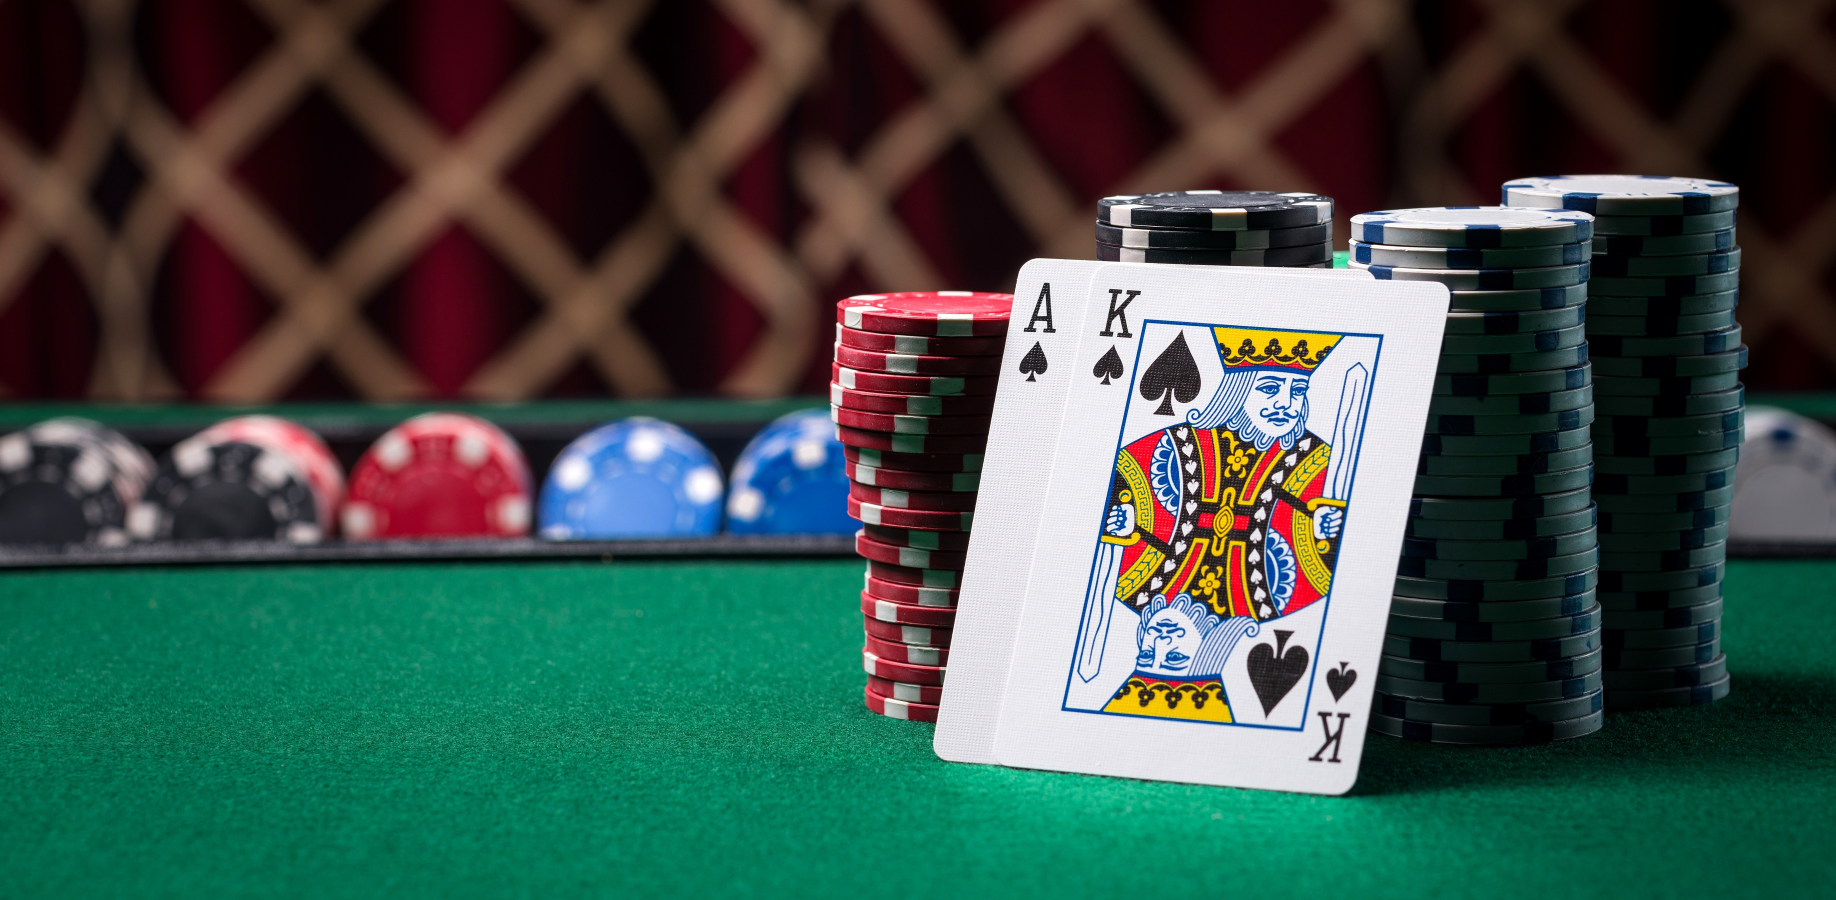 Texas Hold'em ( also known as Texas holdem, hold 'em